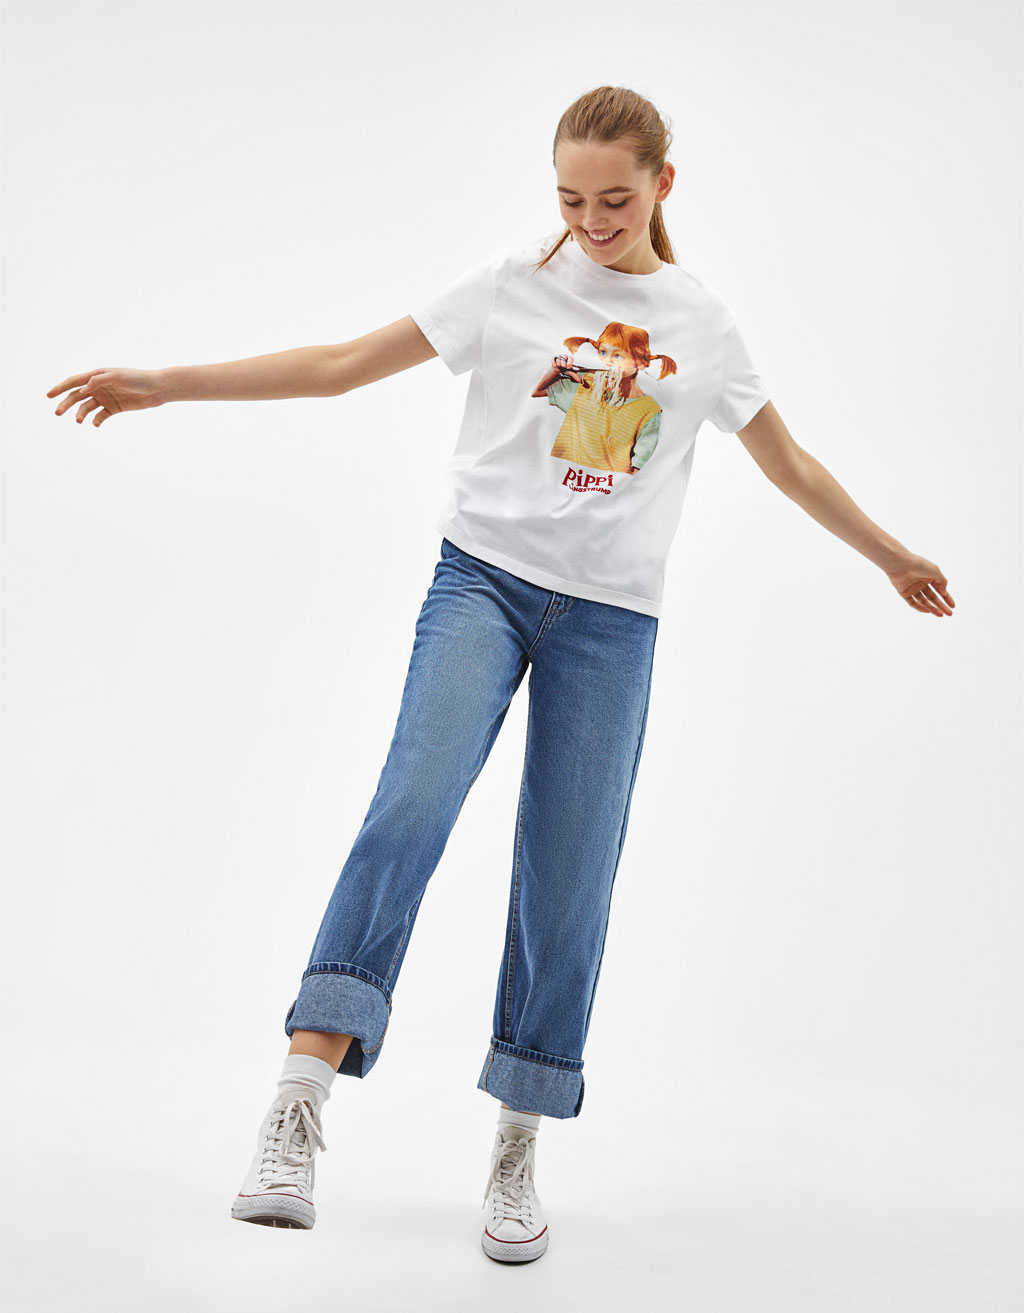 Pippi Longstocking T-shirt